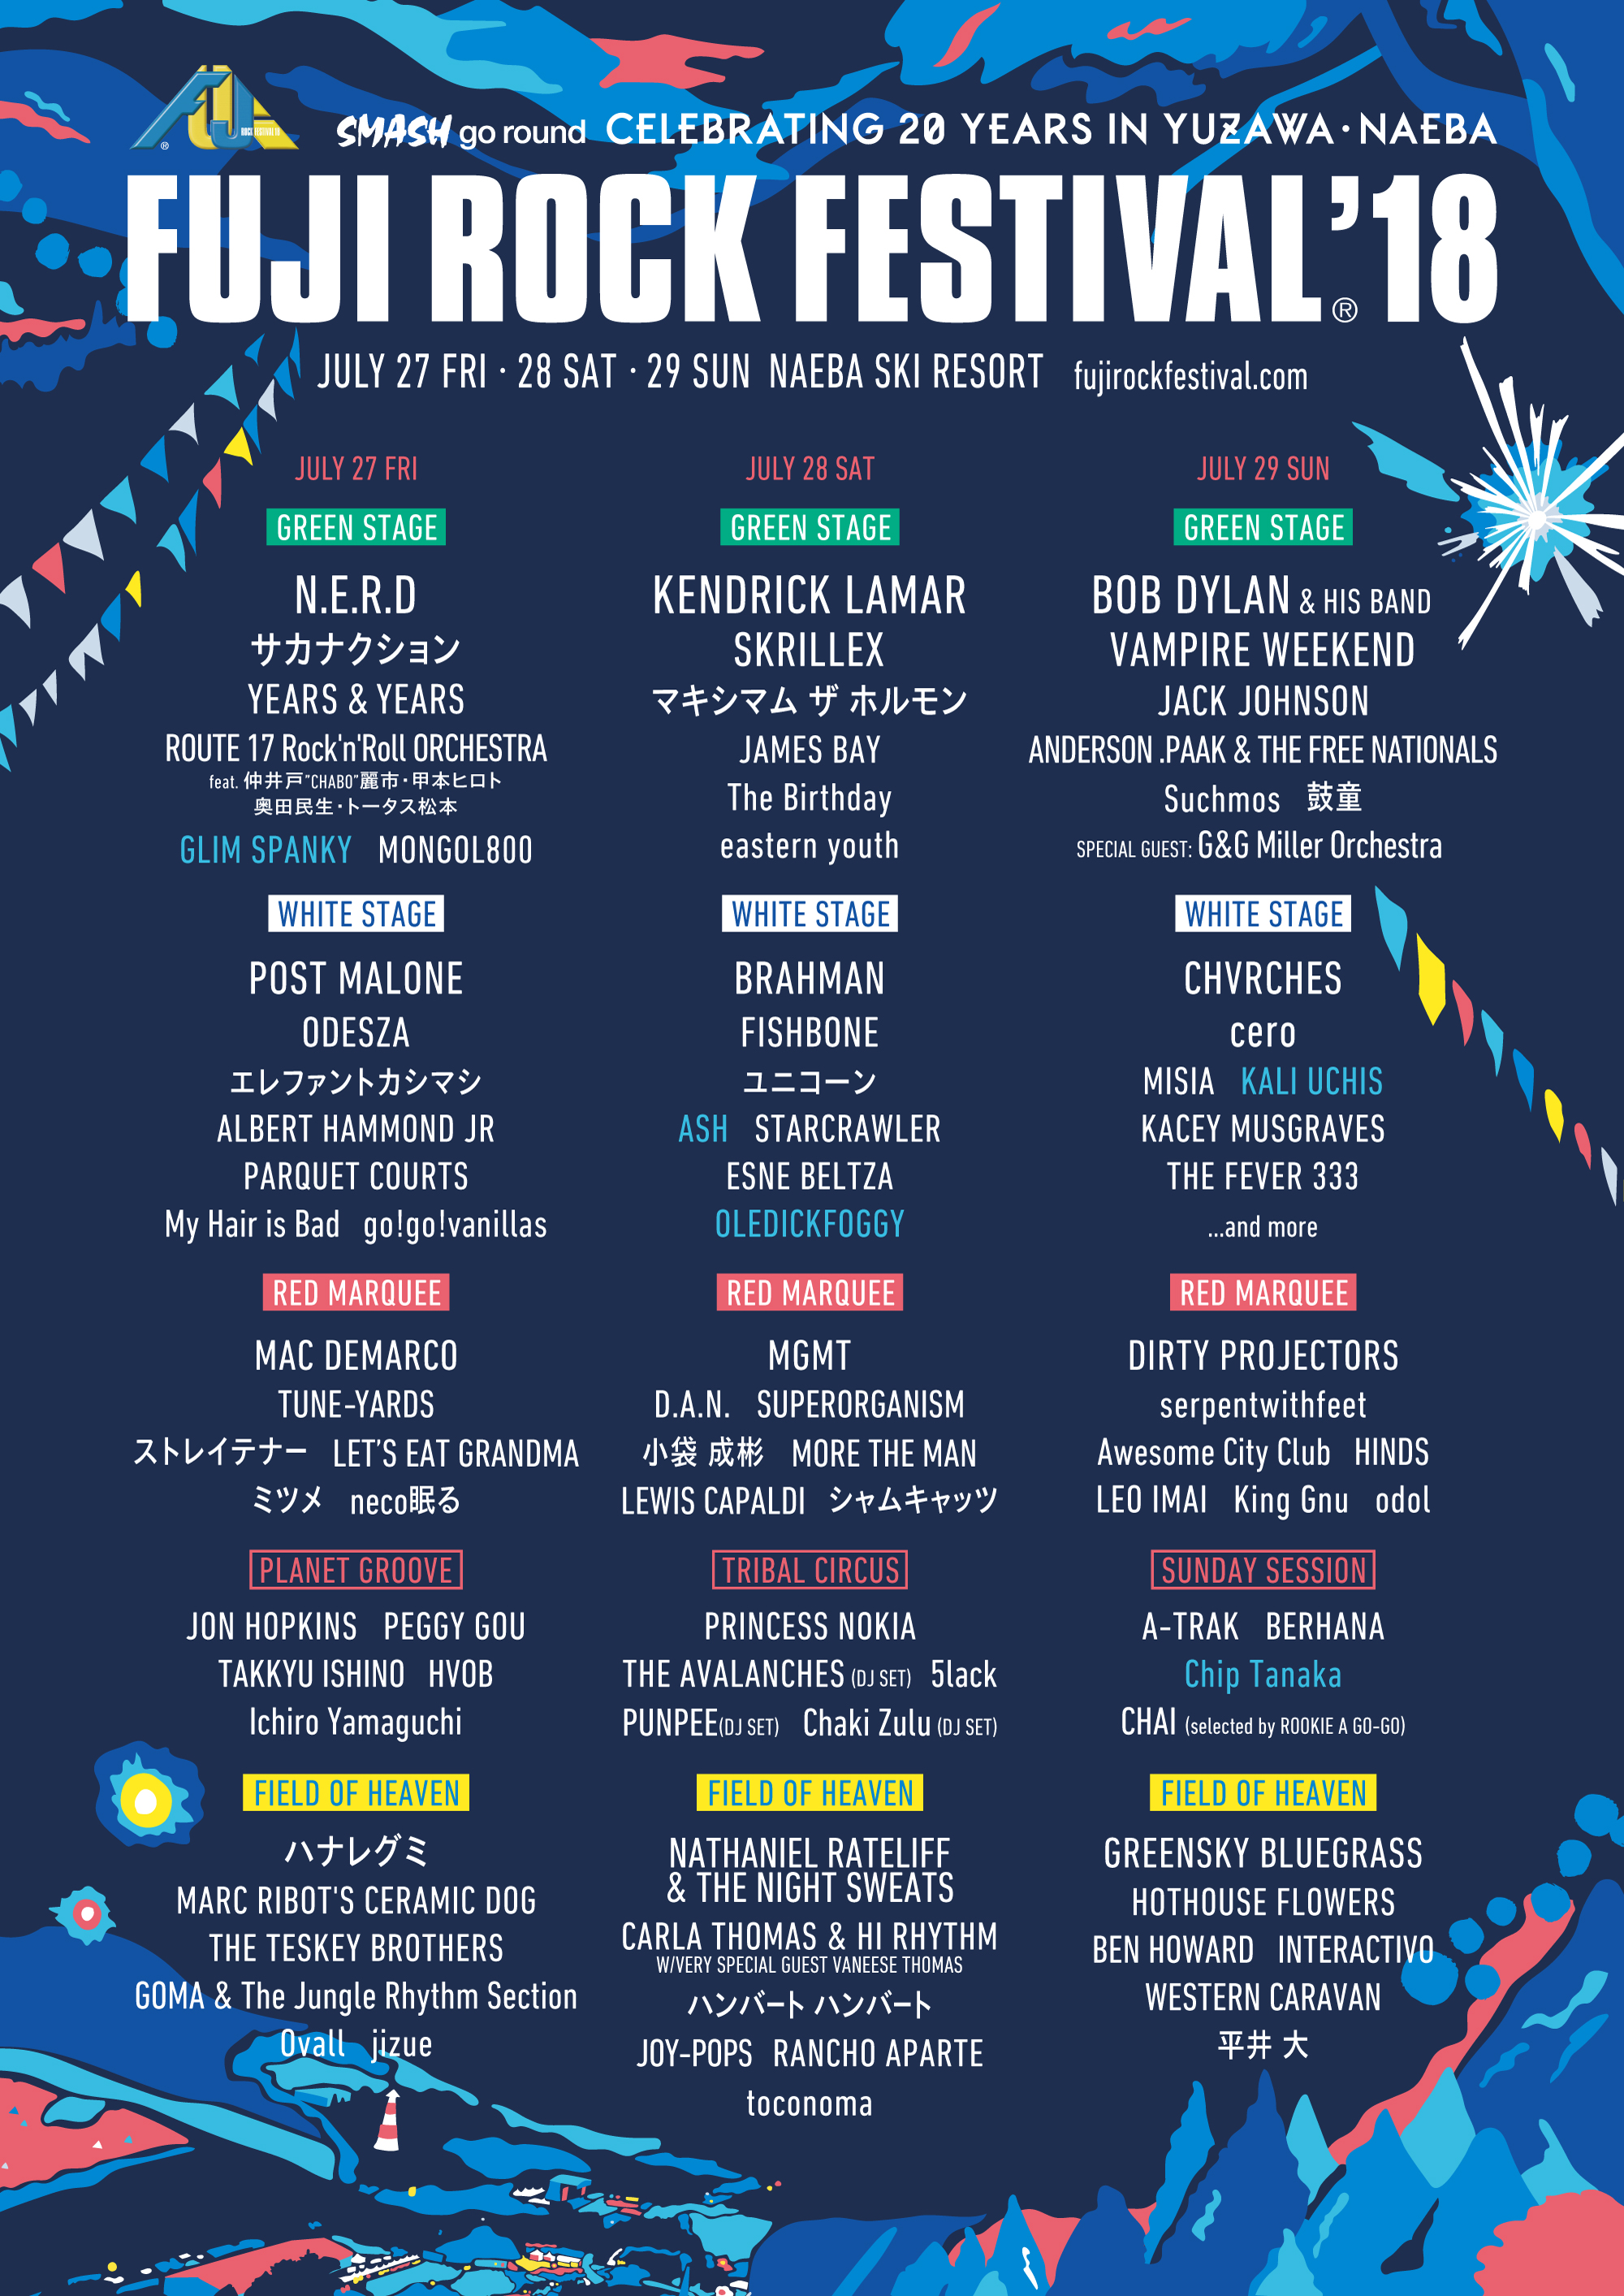 Ash, Glim Spanky, Kali Uchis And More Added To Fuji Rock Festival 2018!